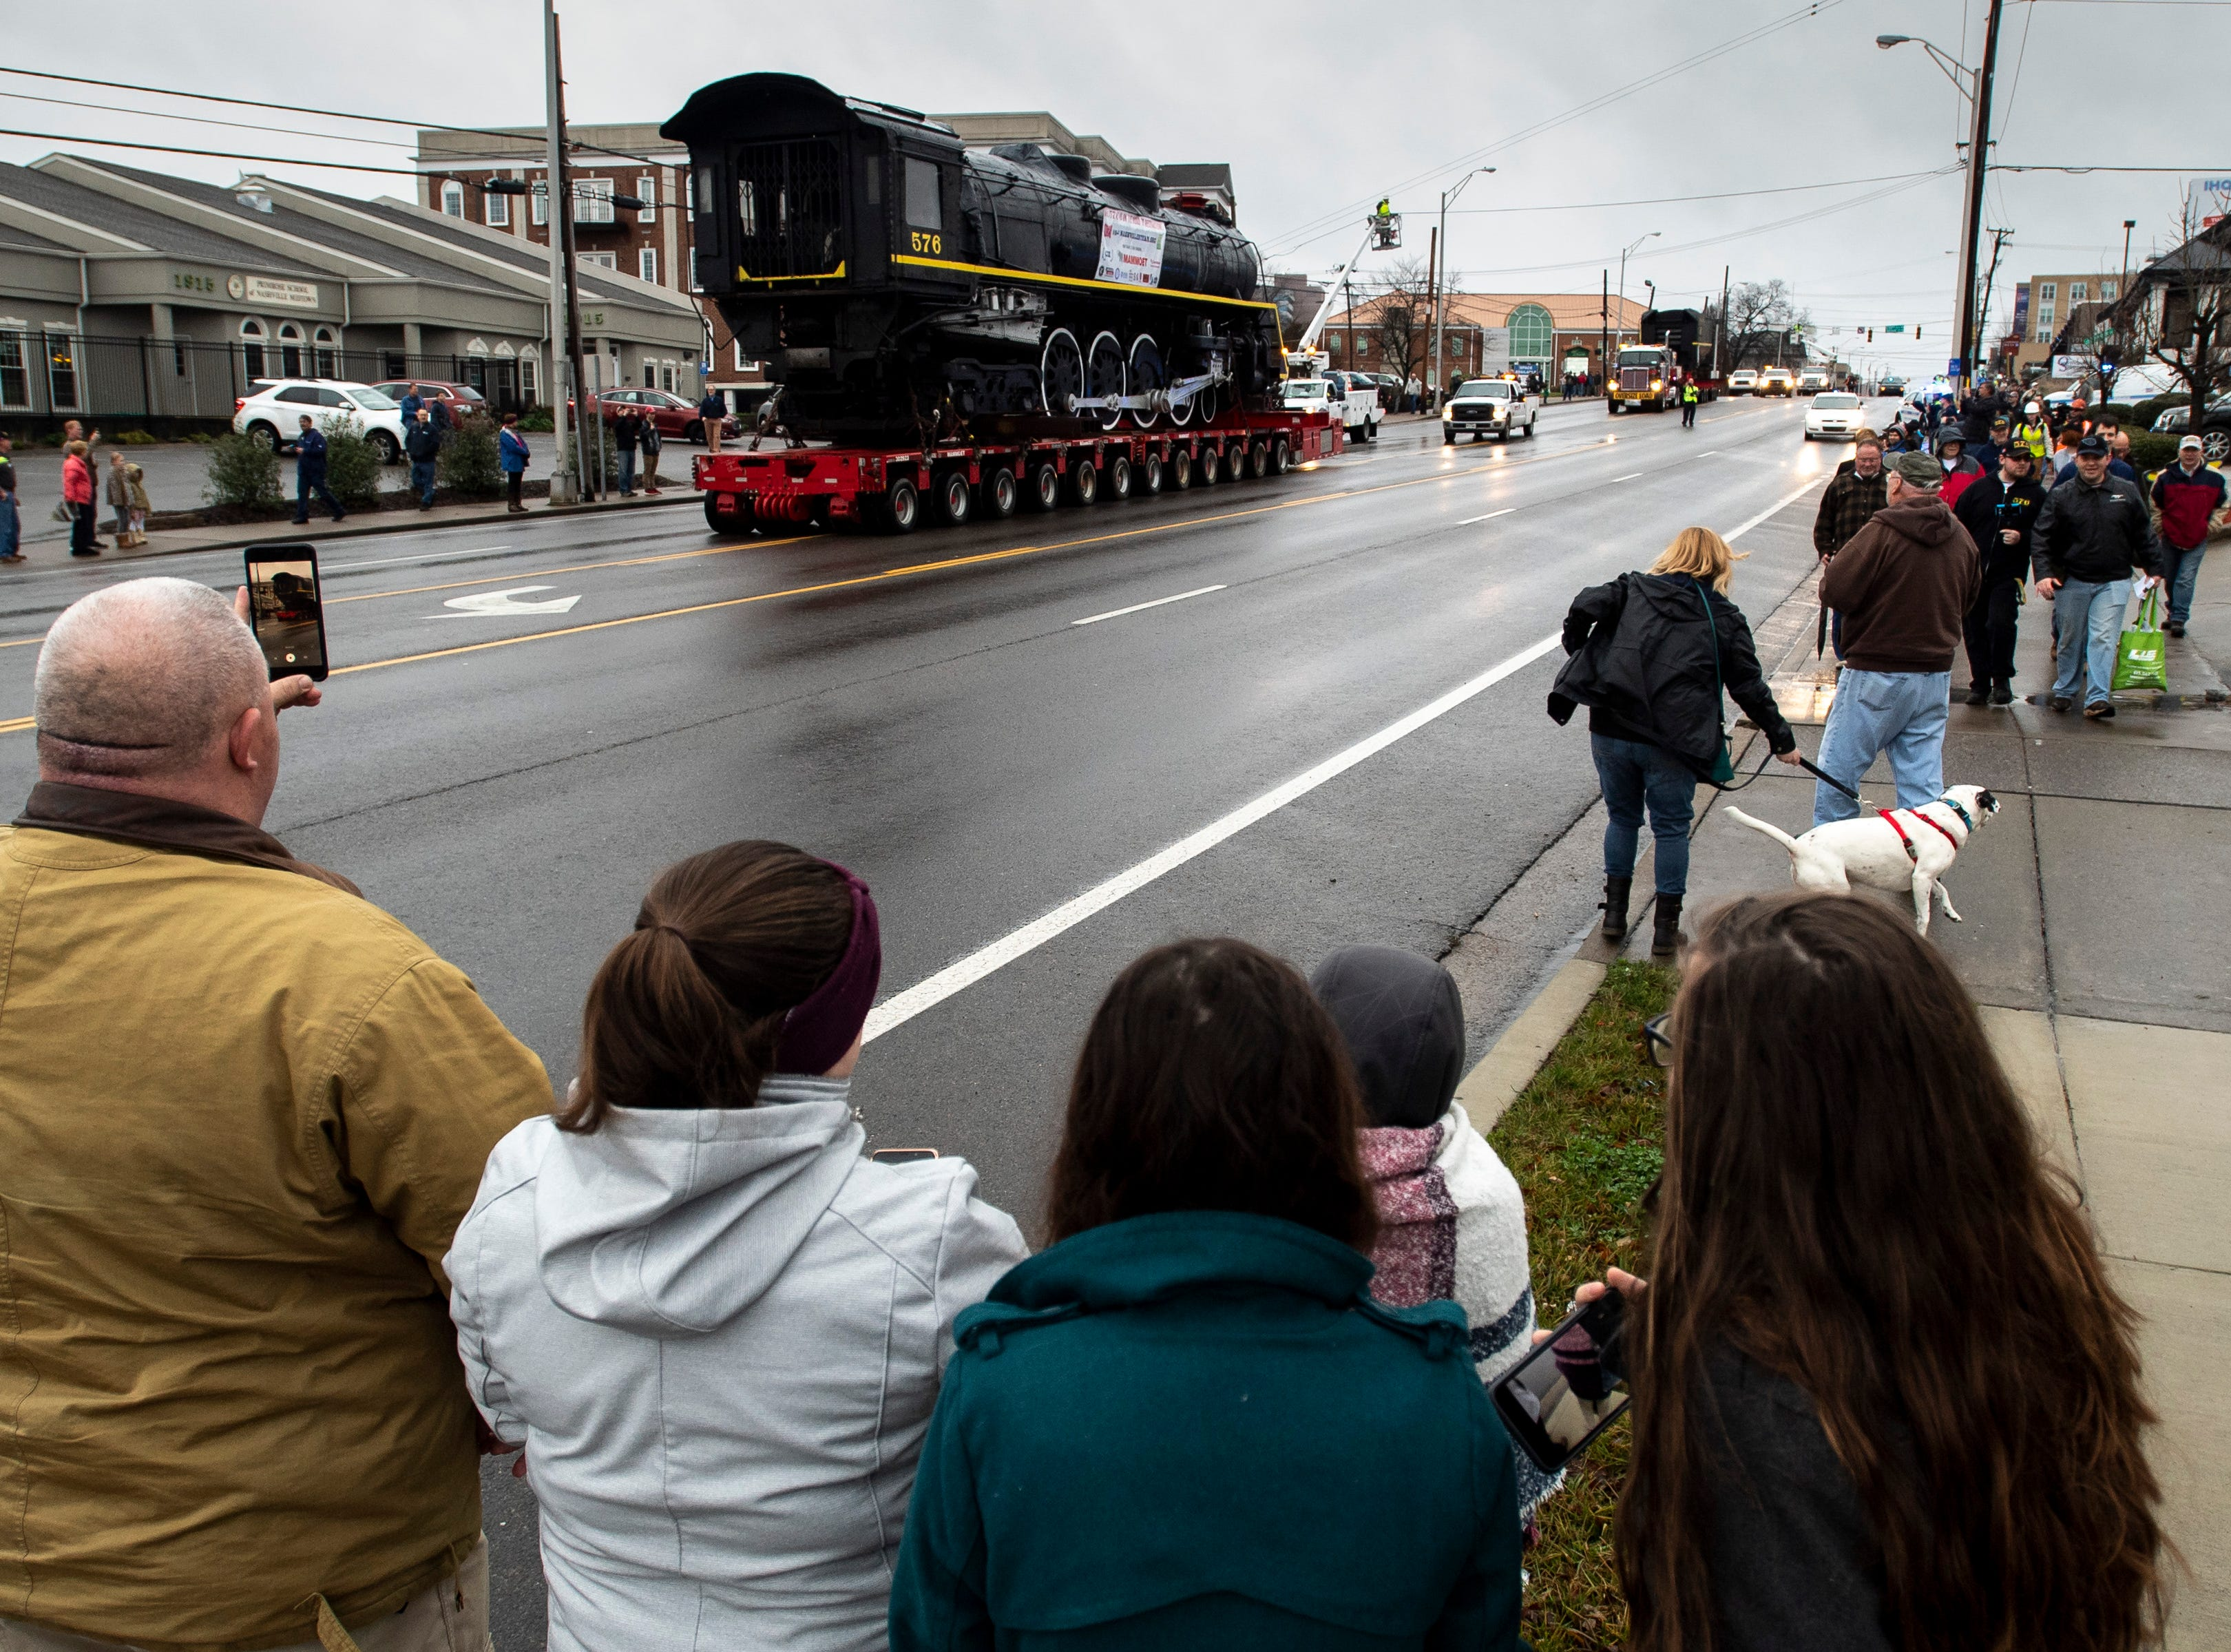 Spectators watch as former Nashville, Chattanooga & St. Louis Railway steam locomotive No. 576 is moved down Charlotte Ave. in Nashville, Tenn., Sunday, Jan. 13, 2019. The train, which will be restored to working condition over approximately four years, has been on display in Centennial Park since 1953.